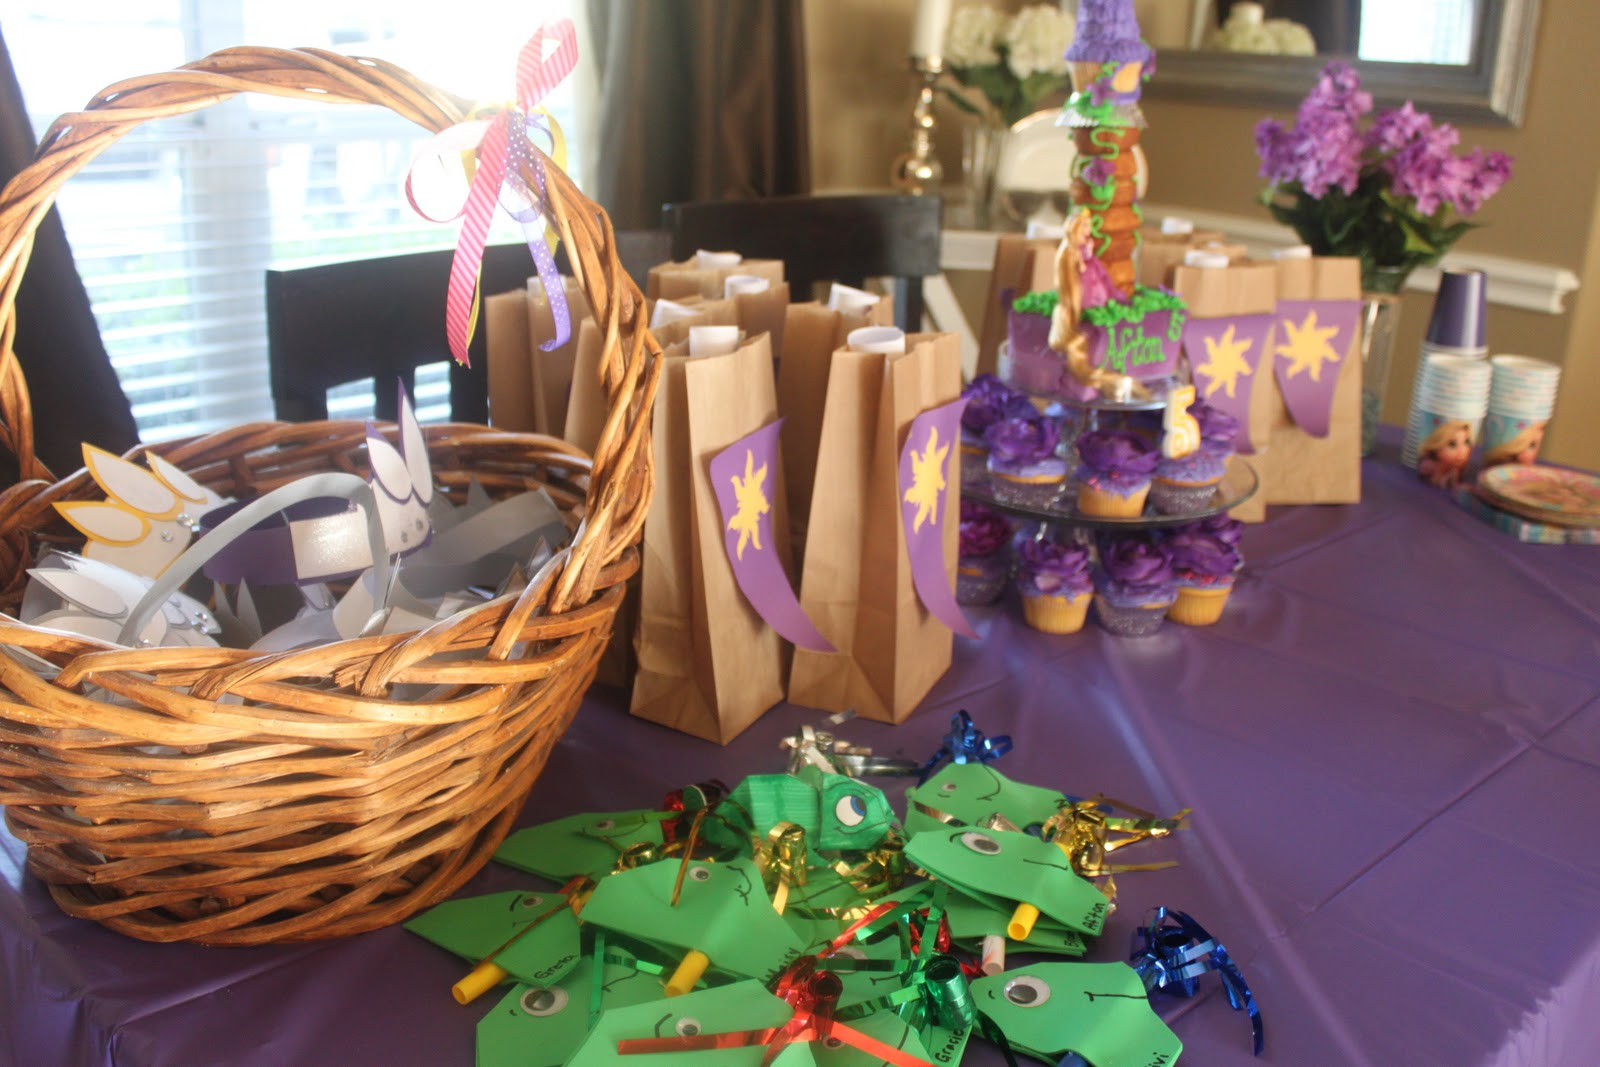 The table was decorated with goody bags, Rapunzel crowns and Pascal